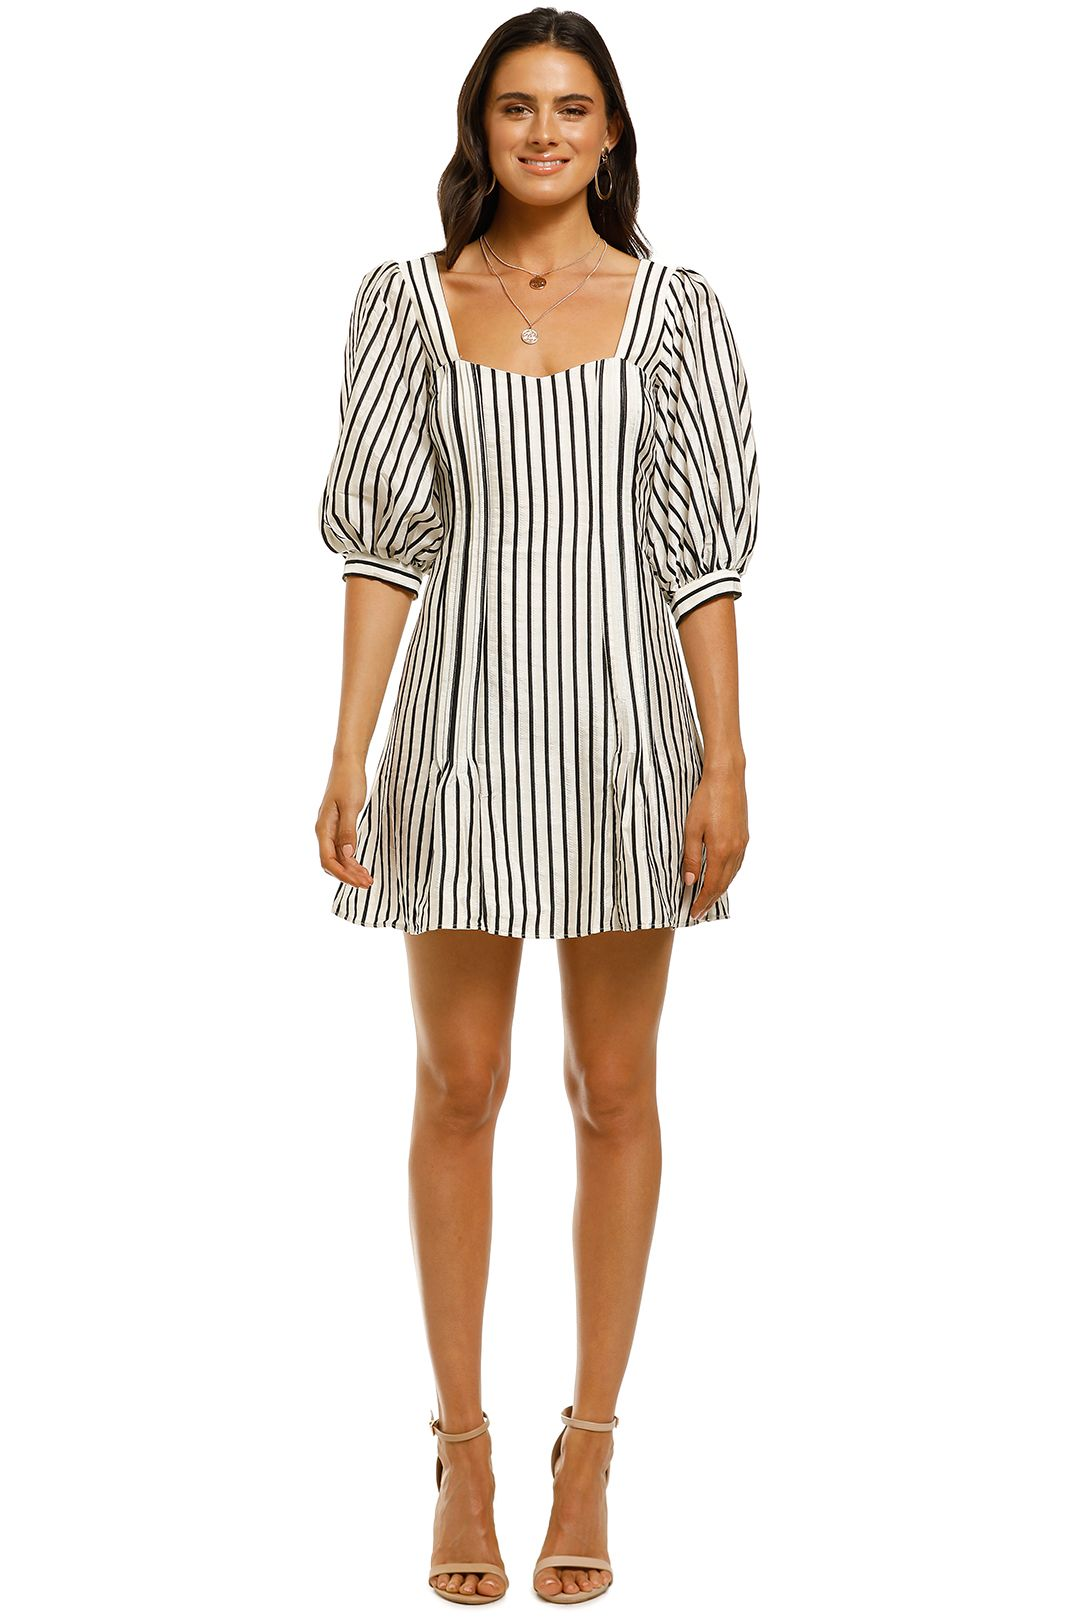 Talulah-Wild-Honey-Mini-Dress-Ecru-and-Green-Stripe-Front